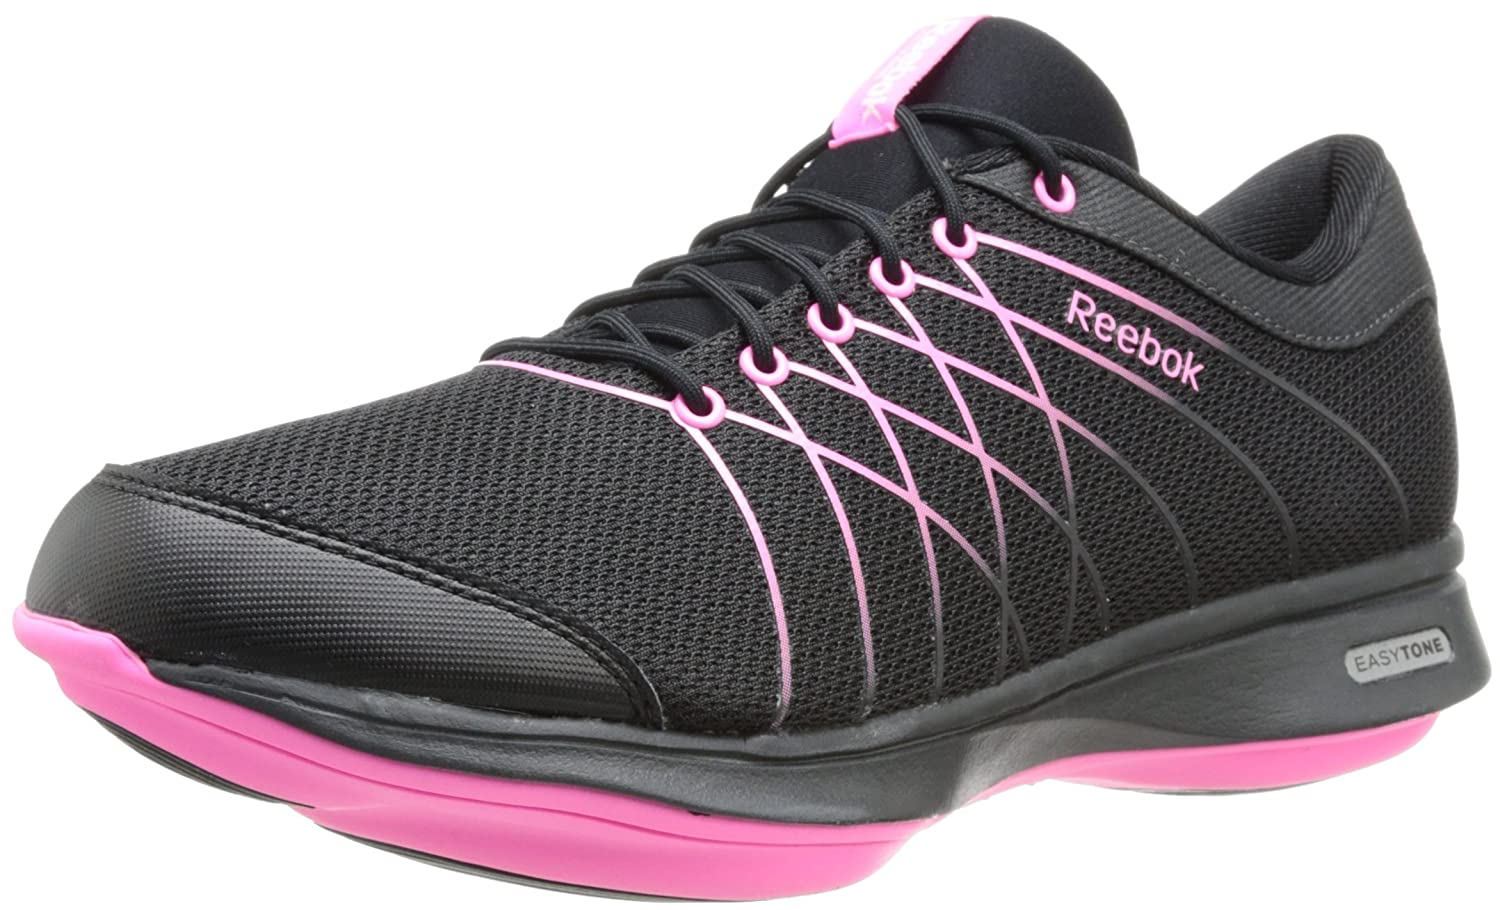 Reebok Women's Easytone Essential III Walking Shoe, Gravel/Black/Electro  Pink, 7 M US: Amazon.co.uk: Shoes & Bags